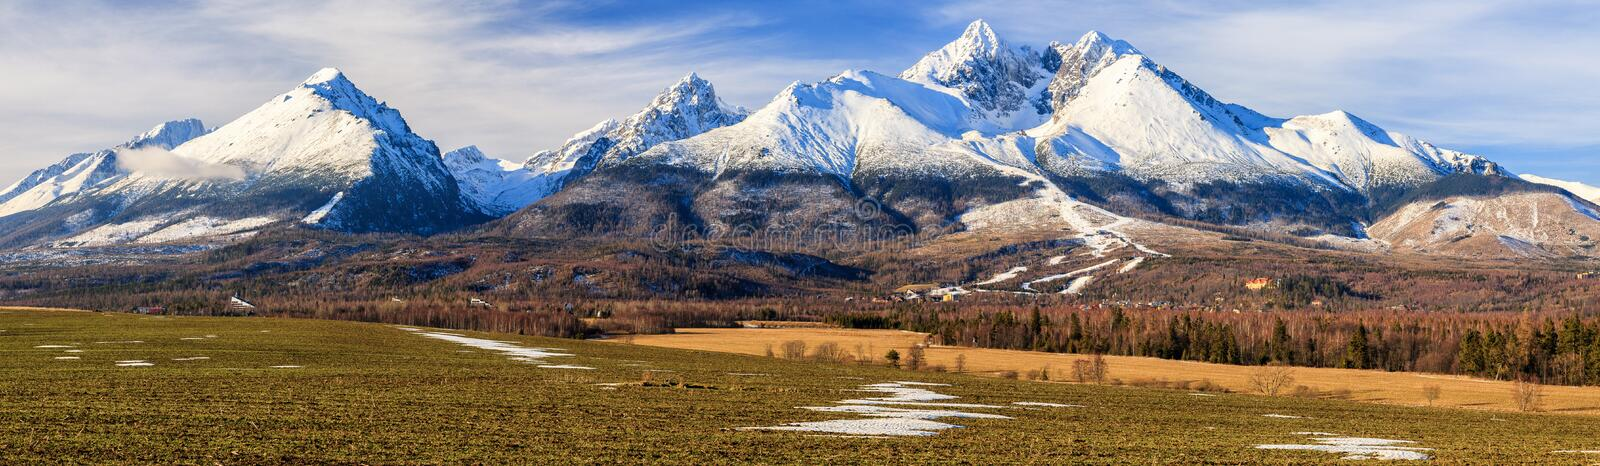 Panoramic view of High Tatras mountains in winter, Slovakia royalty free stock photo